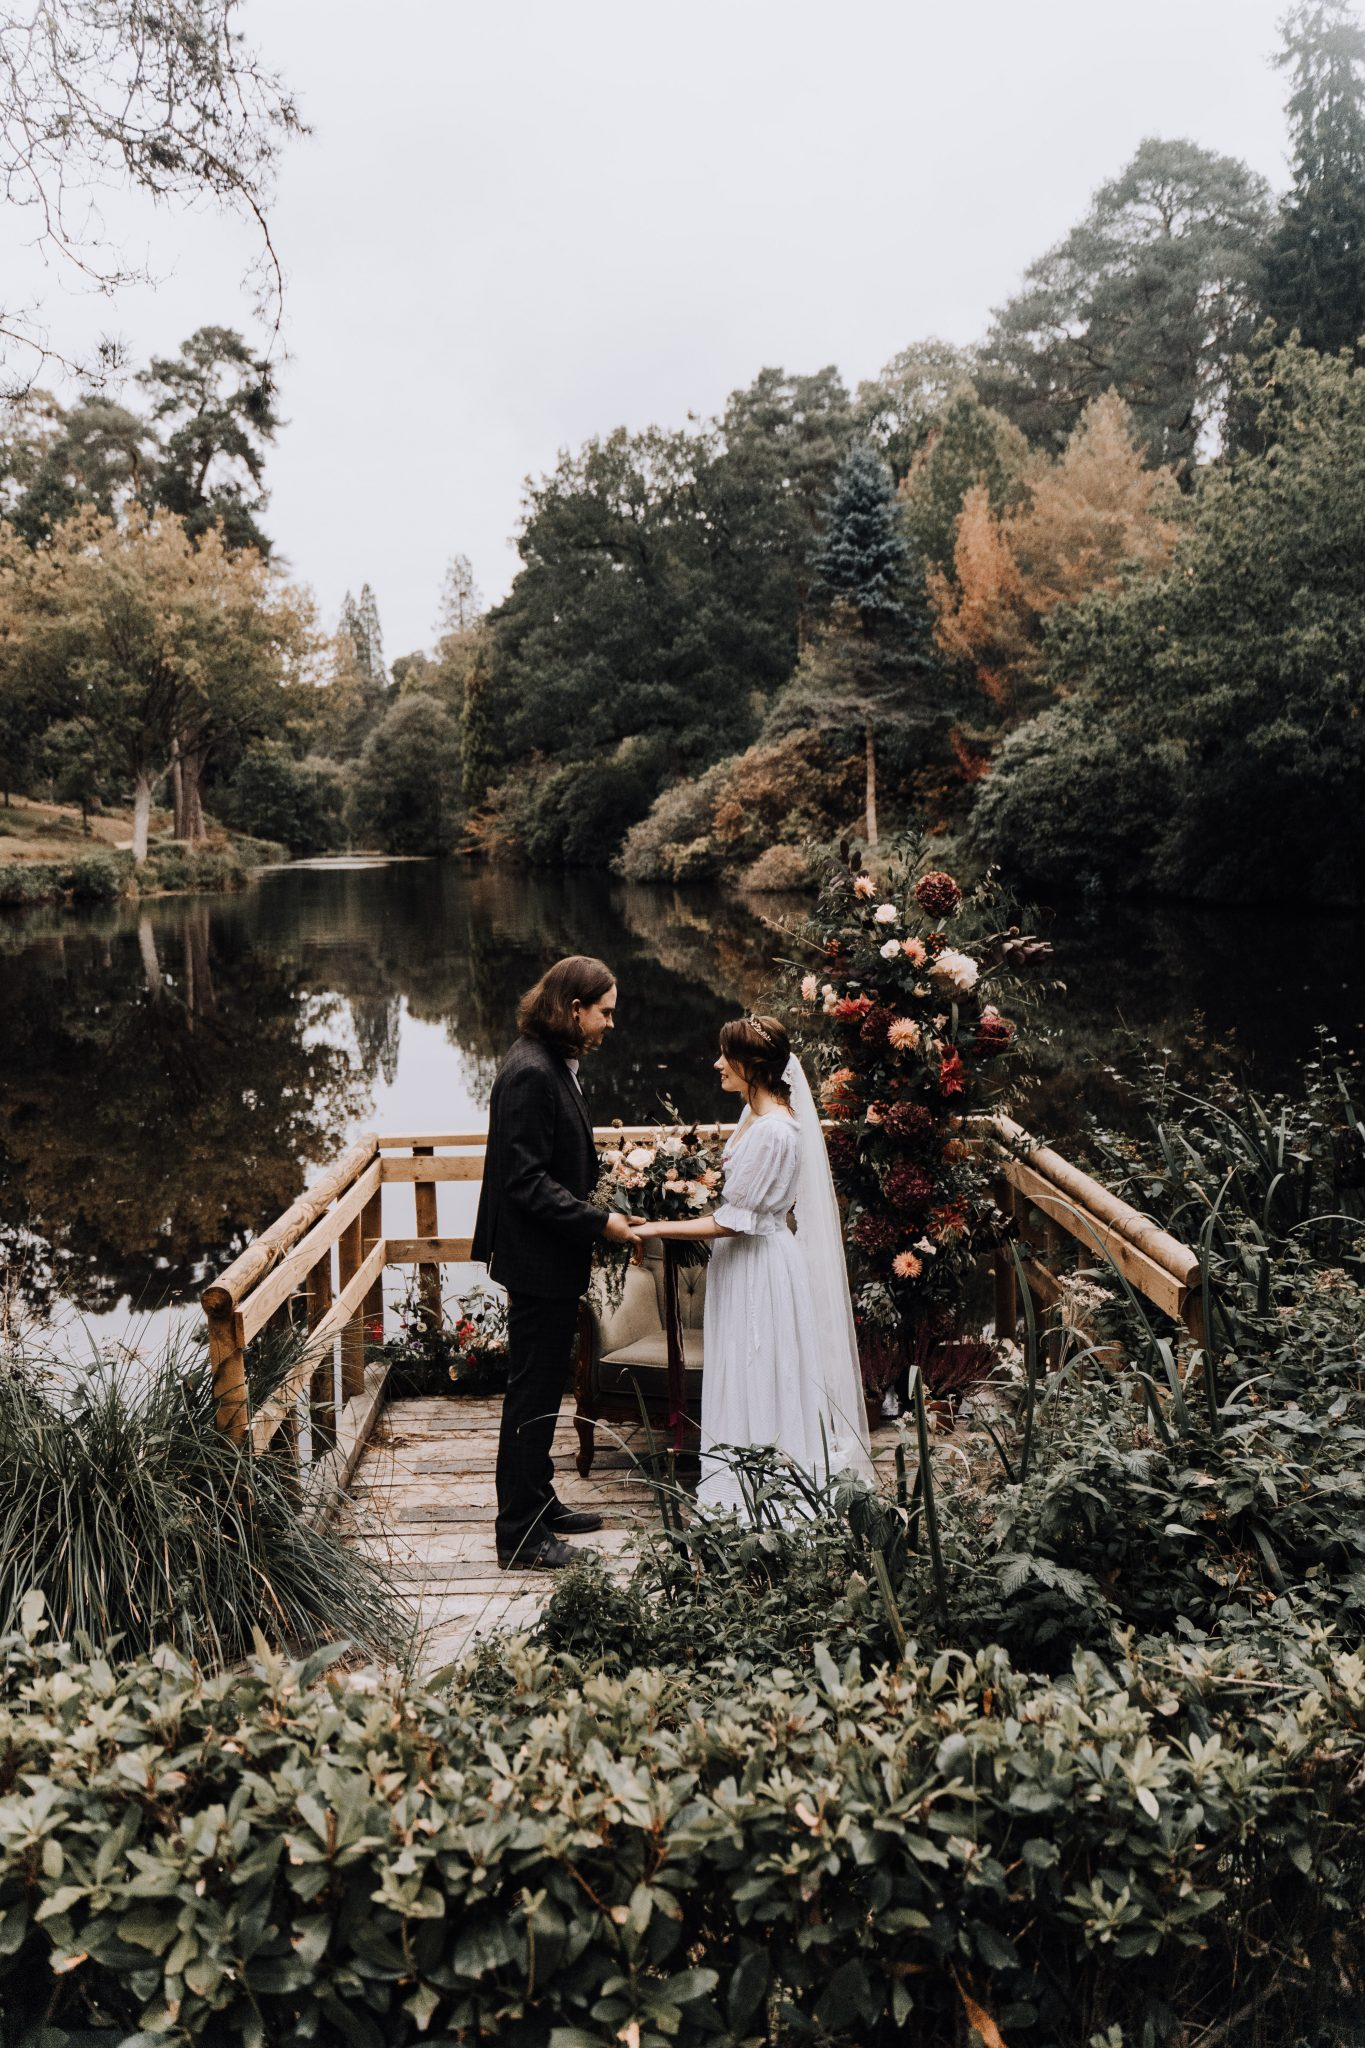 Love from lila xx - Romantic Sussex Weddings